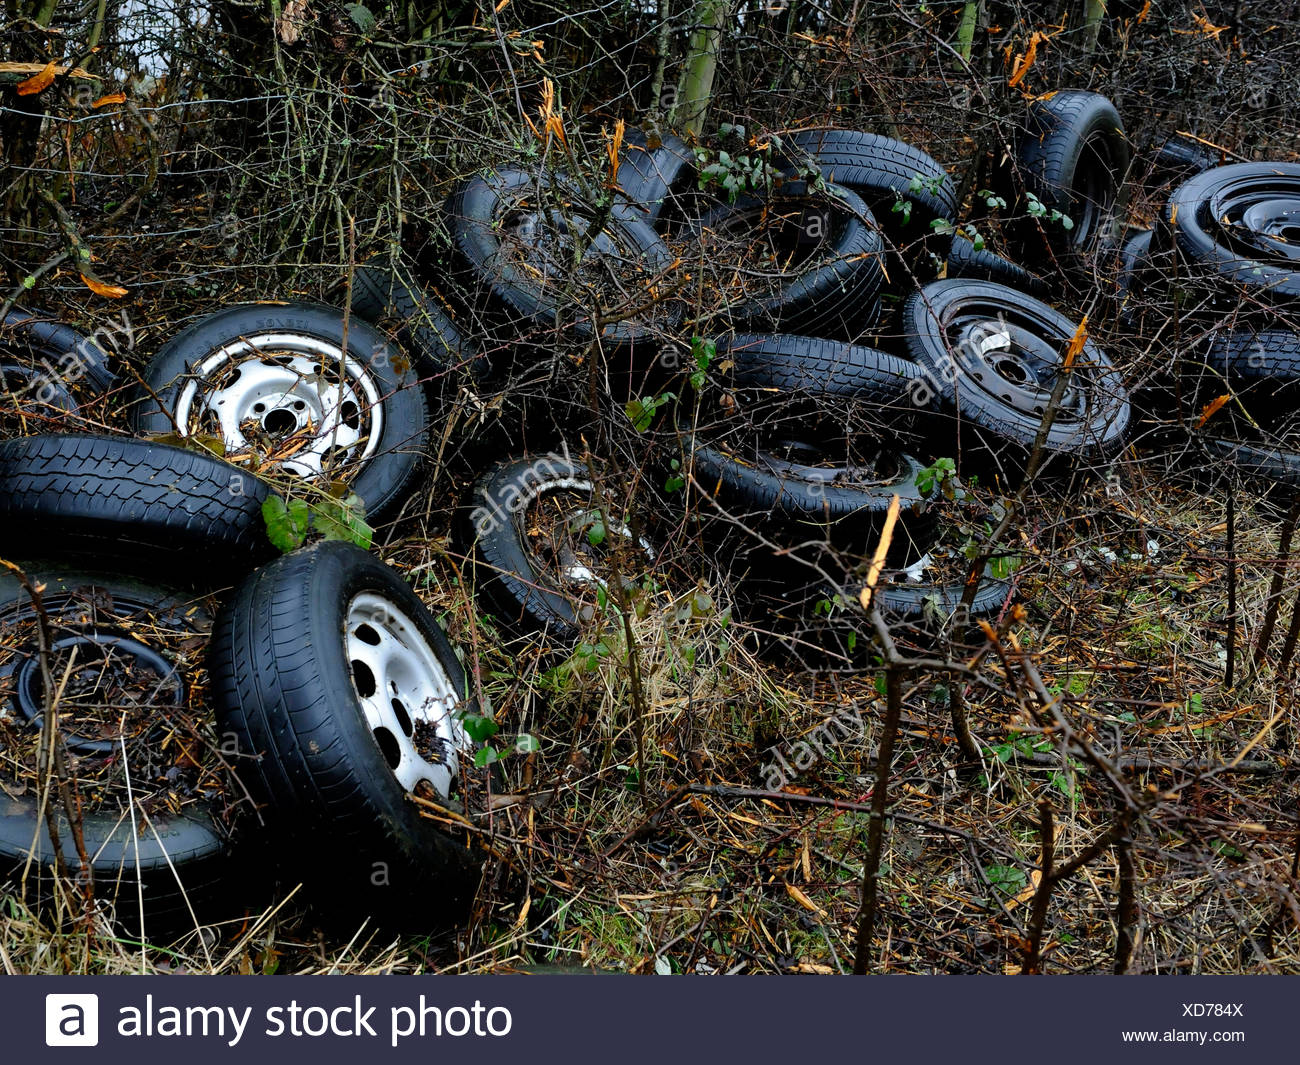 Car tyres illegally dumped in the countryside. - Stock Image